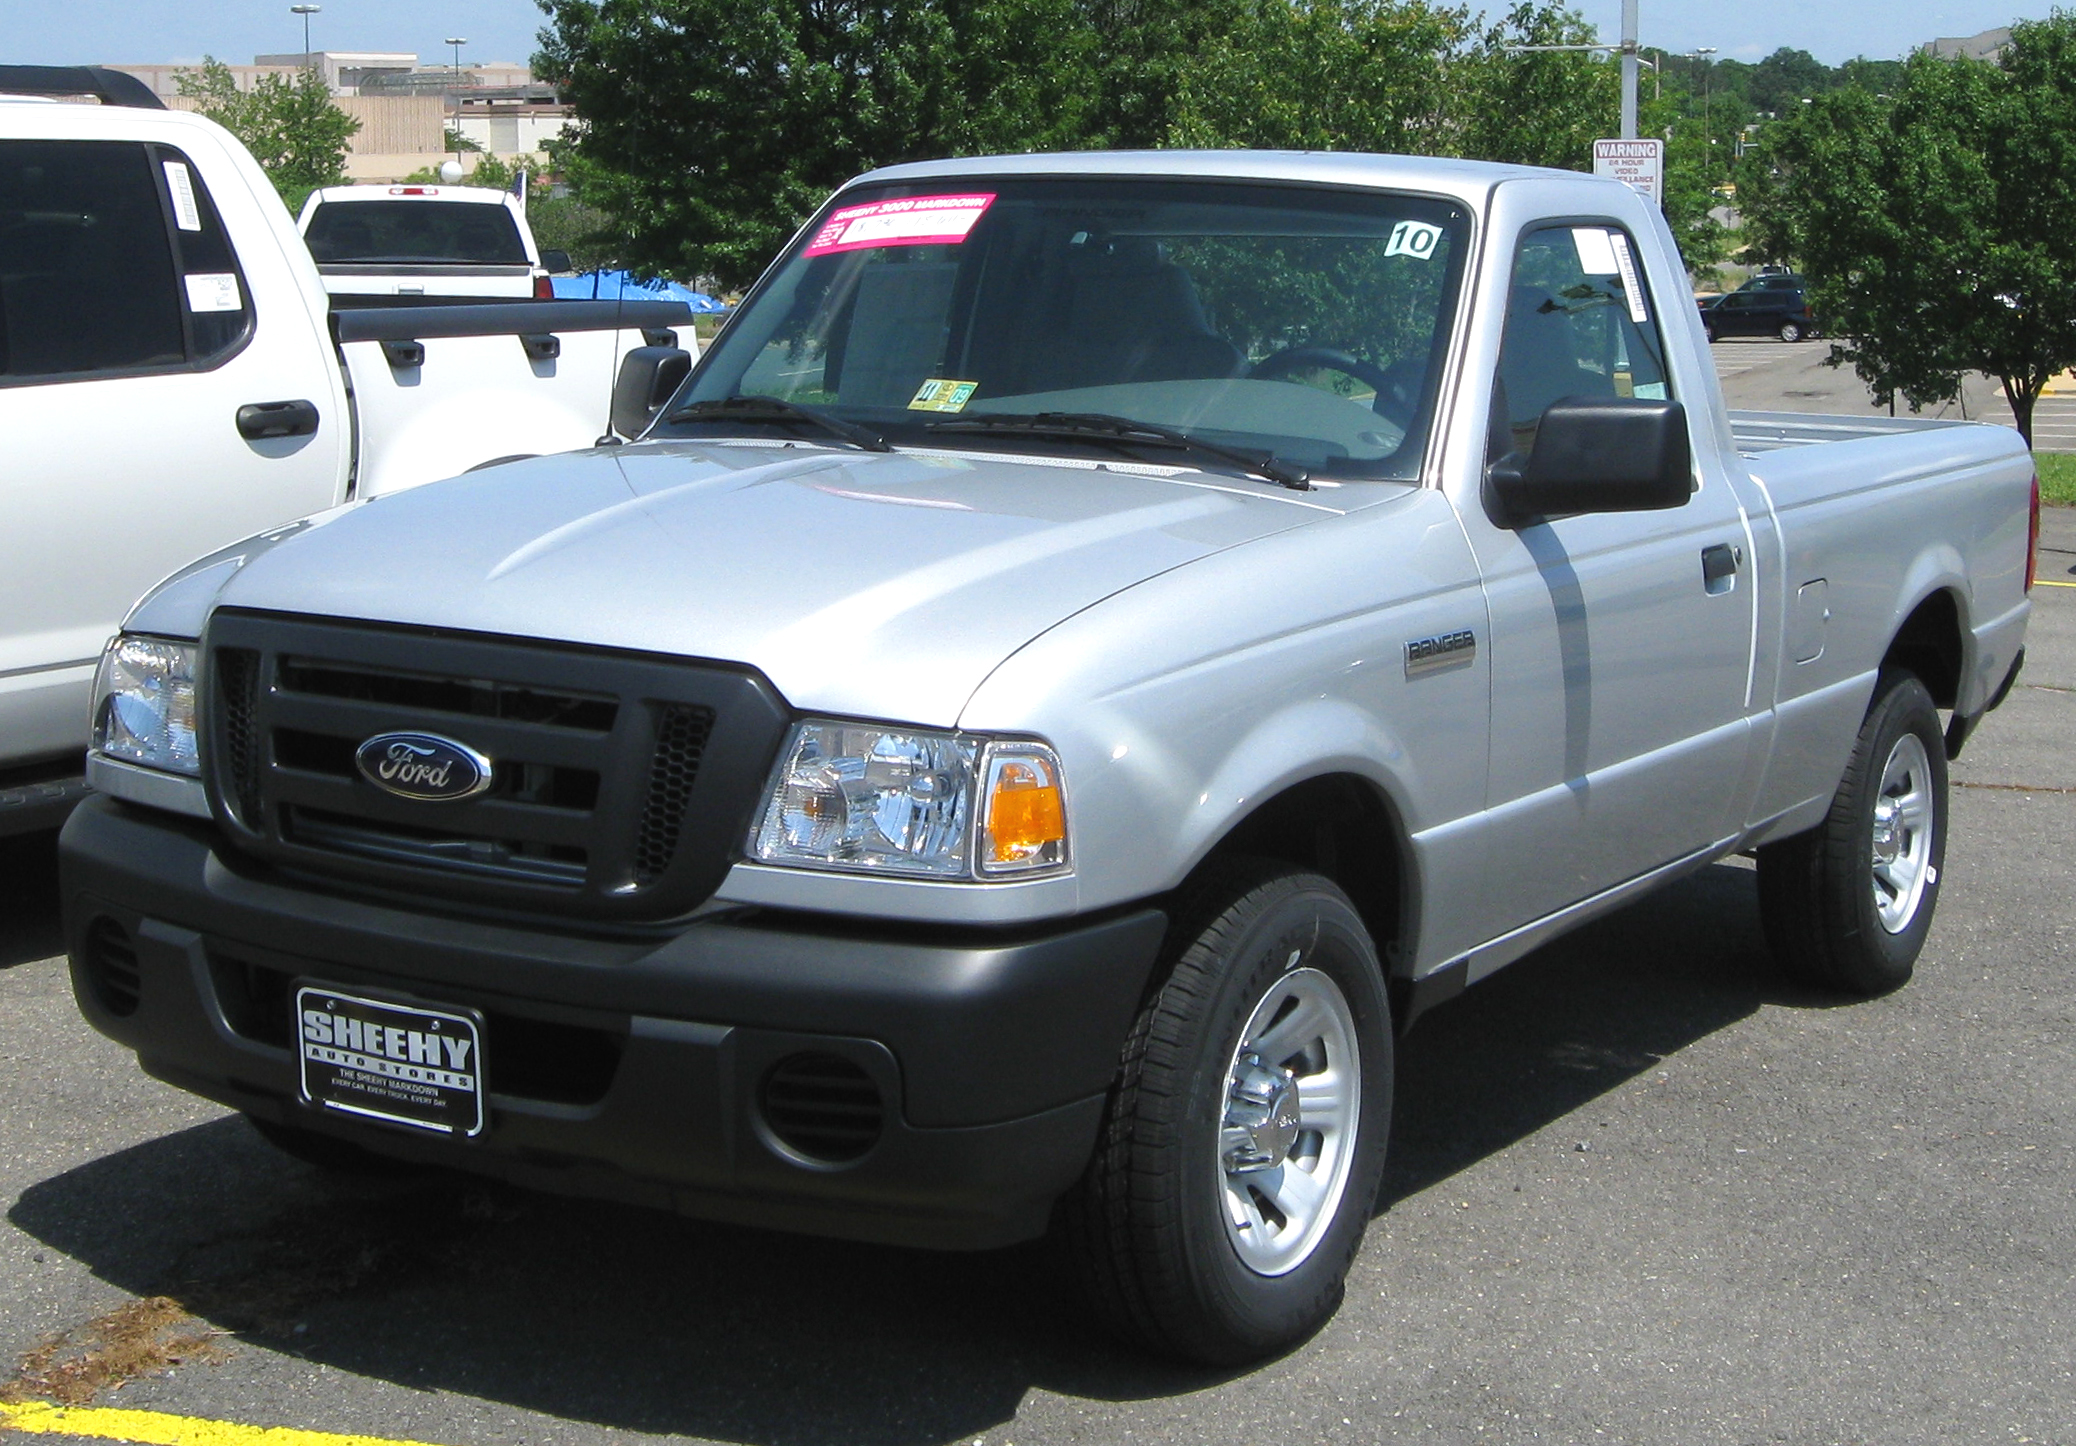 2009 ford ranger information and photos zombiedrive. Black Bedroom Furniture Sets. Home Design Ideas